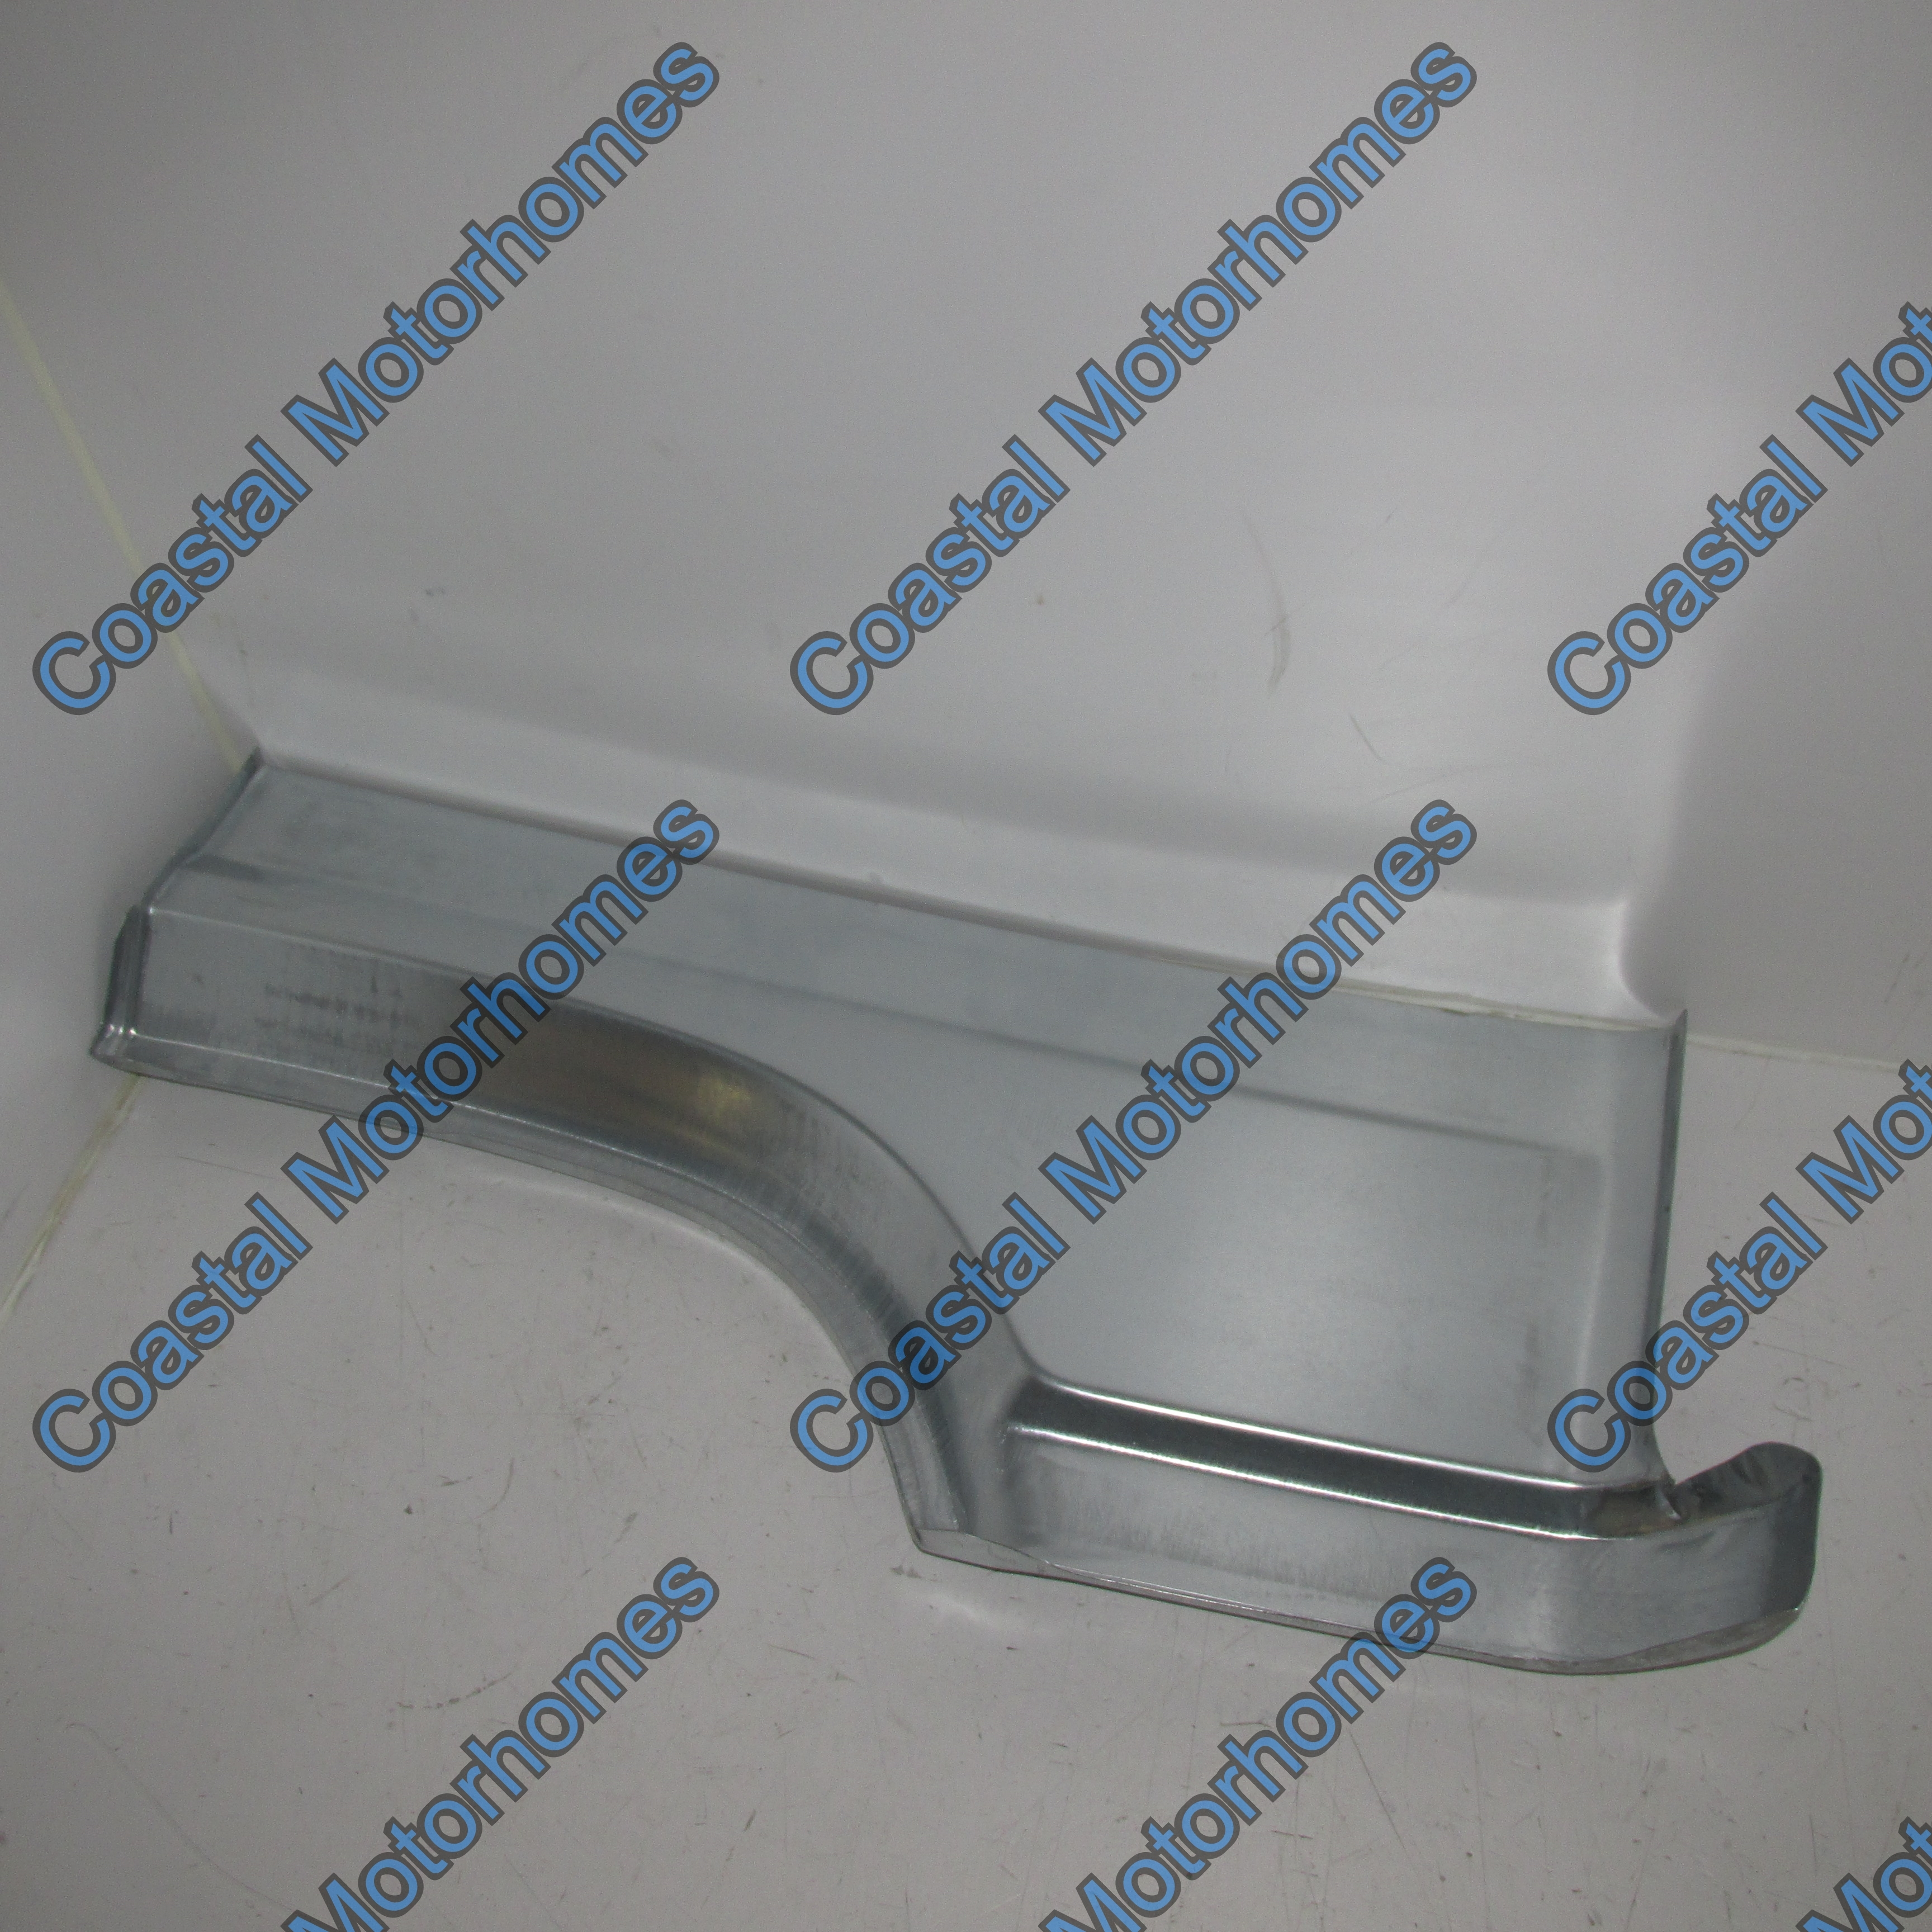 Talbot Express Fiat Ducato MK1 Right Lower Wing Repair Citroen C25 Peugeot J5